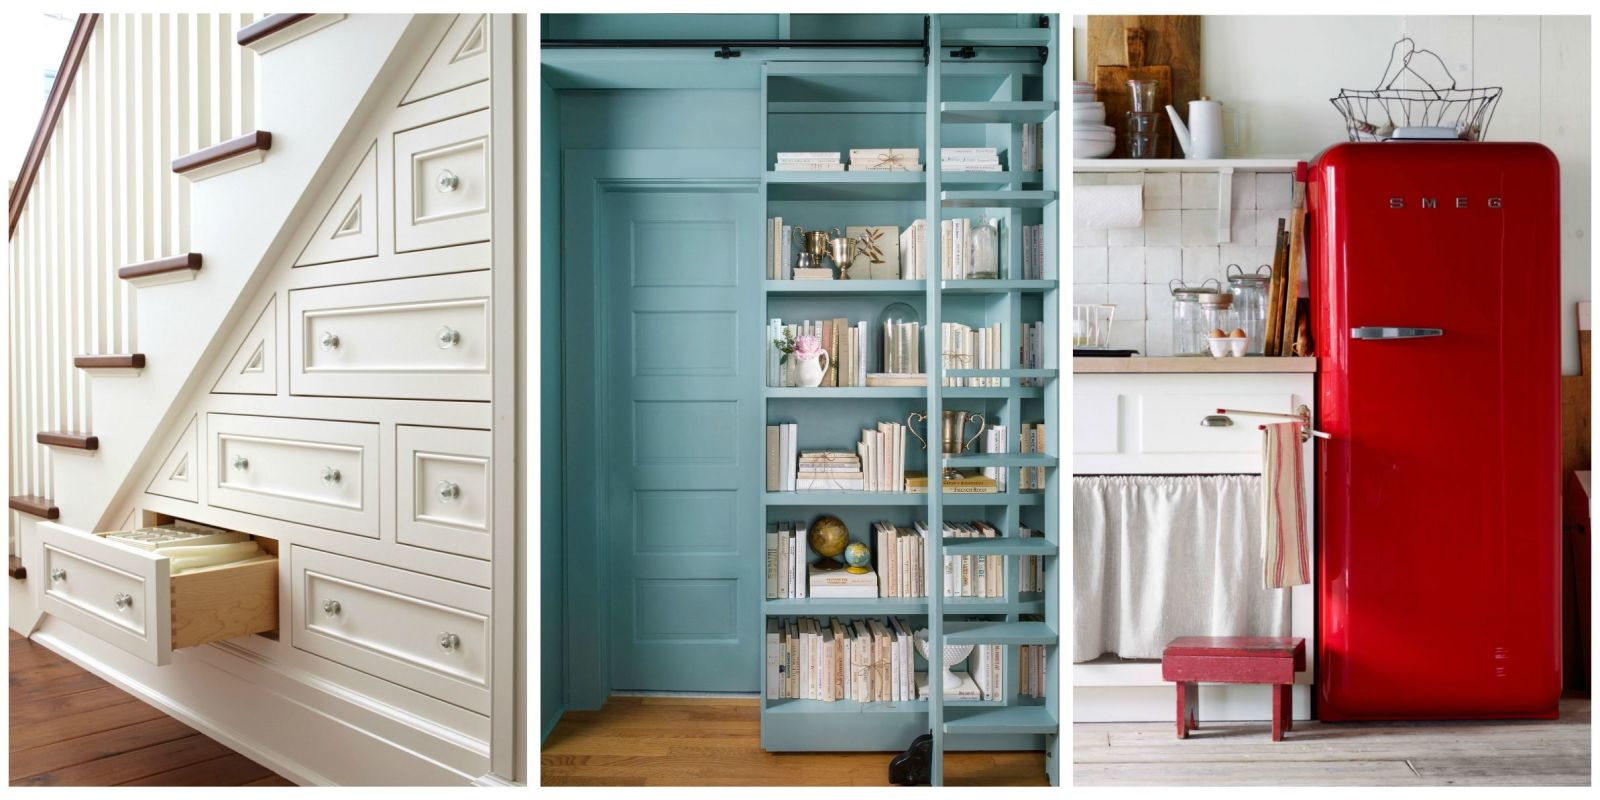 17 Small Space Decorating Ideas Organization For Rooms